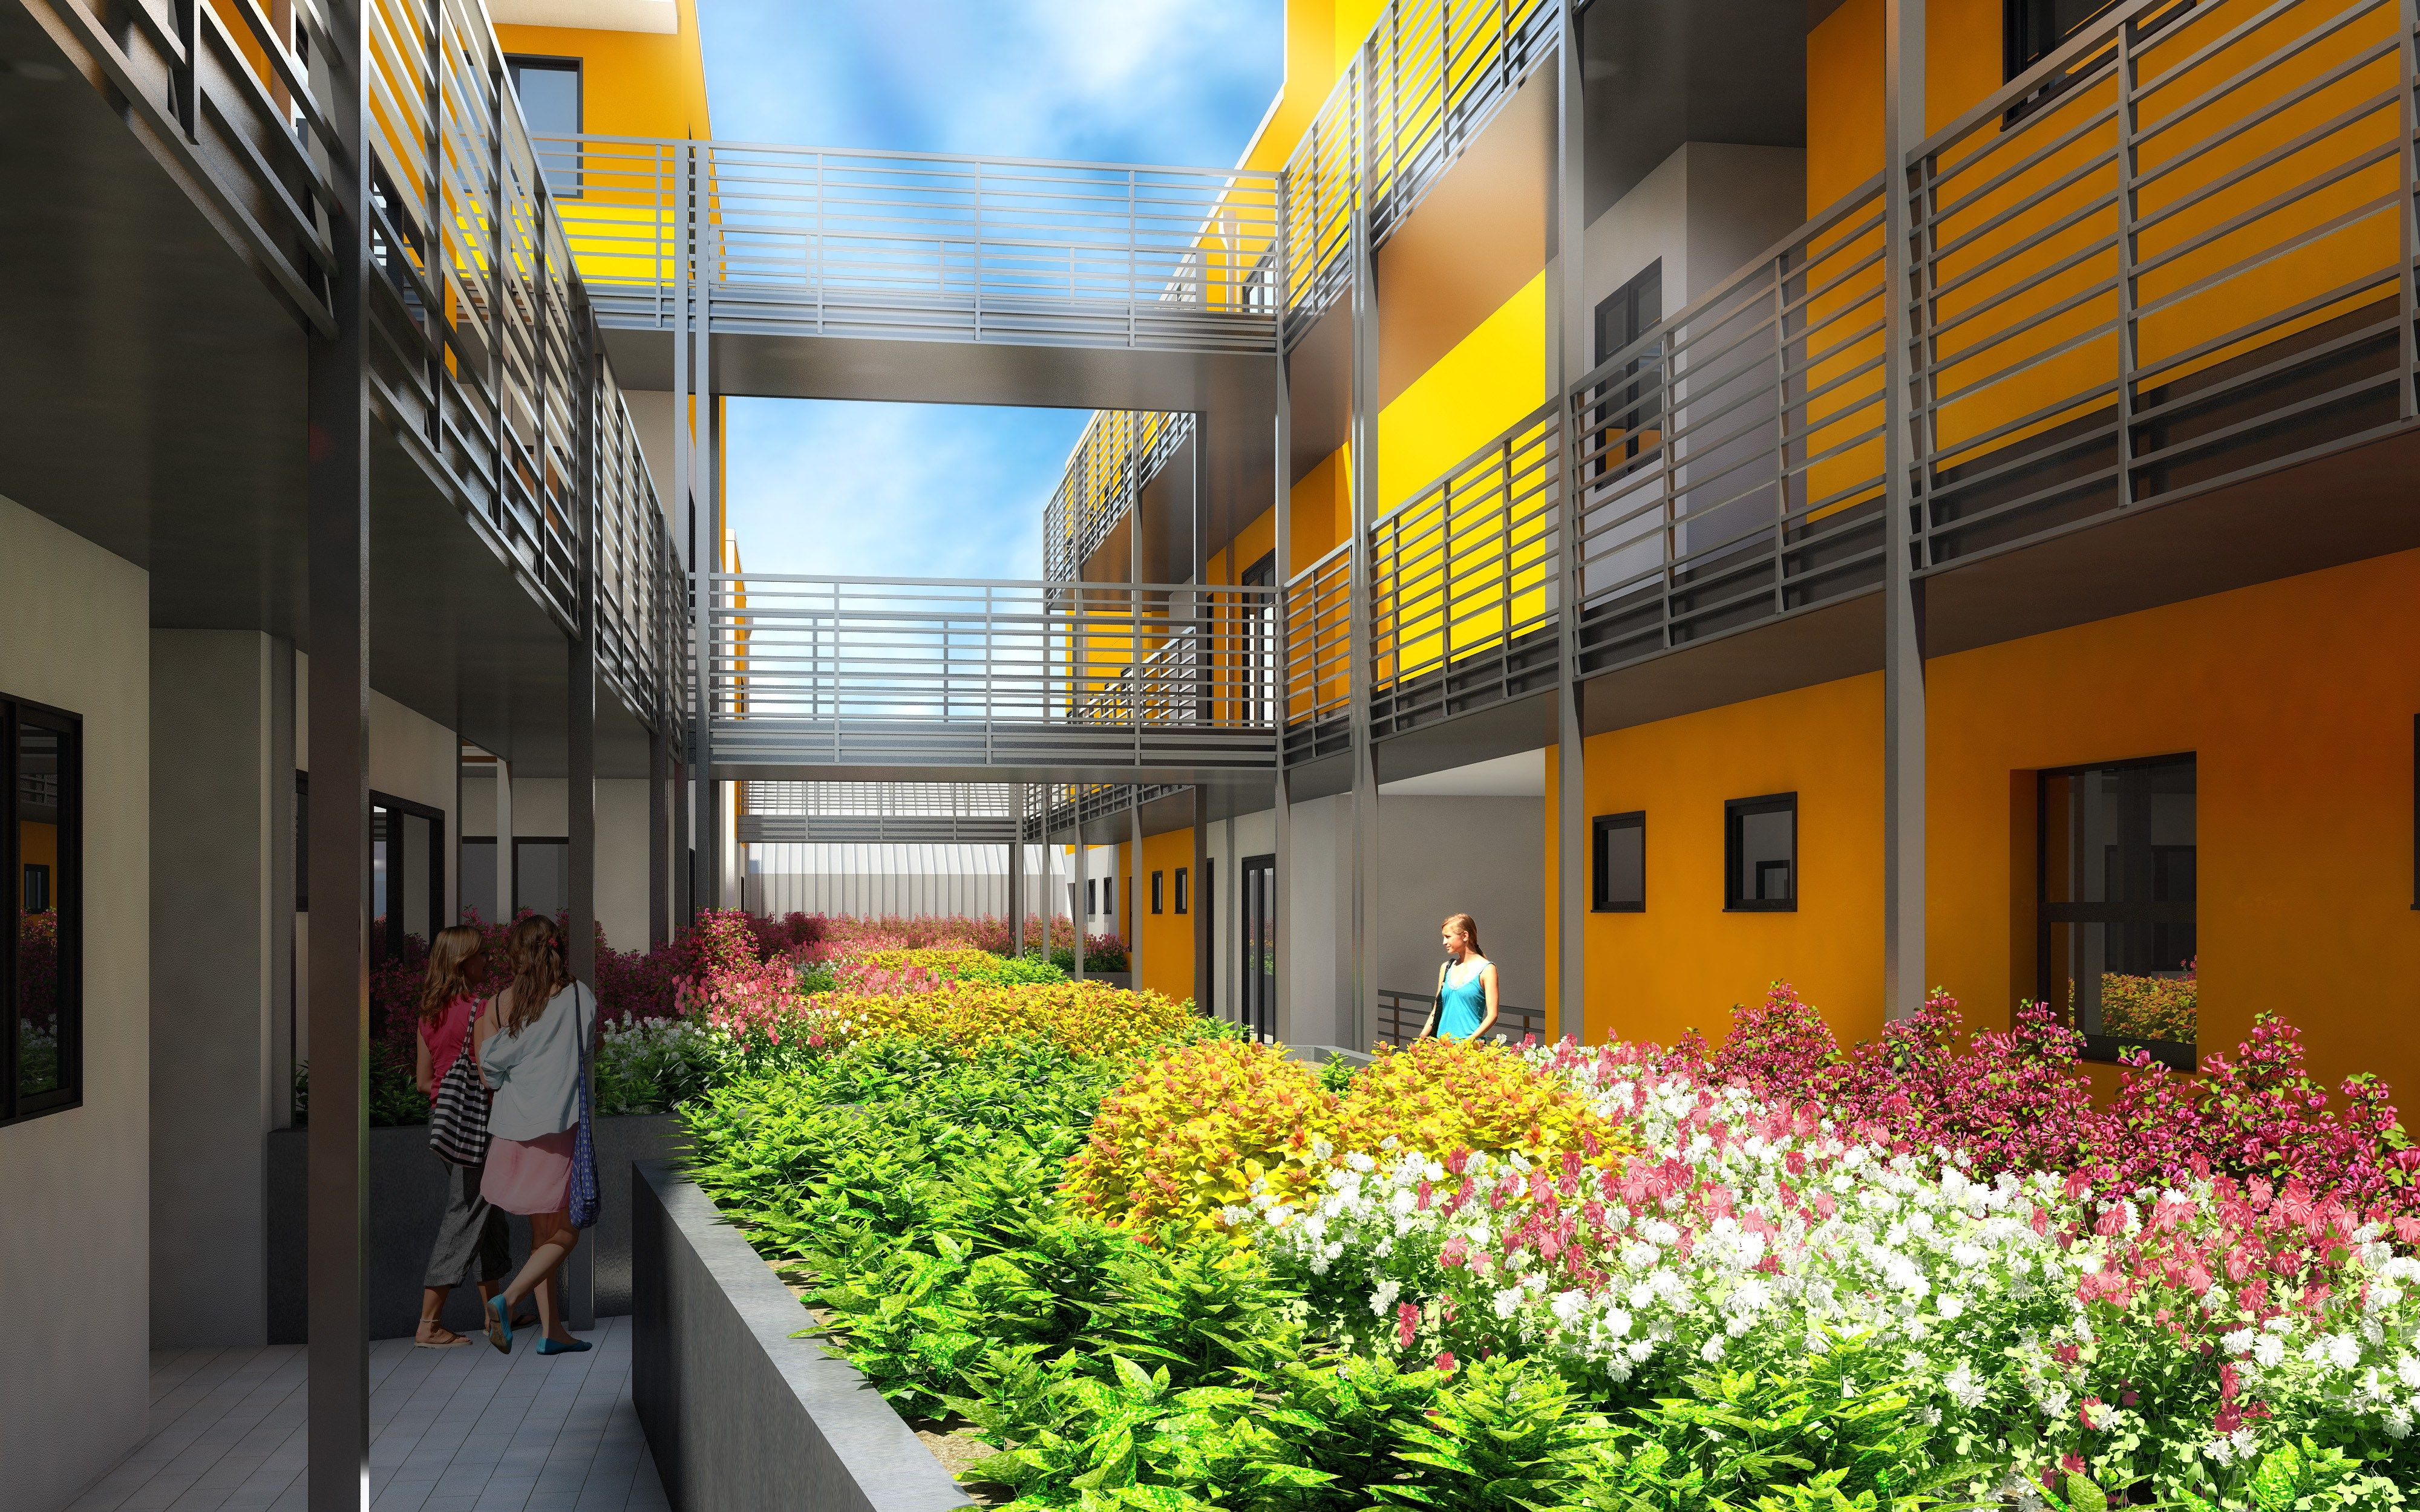 Image Result For Courtyard Apartments Single Loaded Corridor Courtyard Apartments Courtyard Apartment